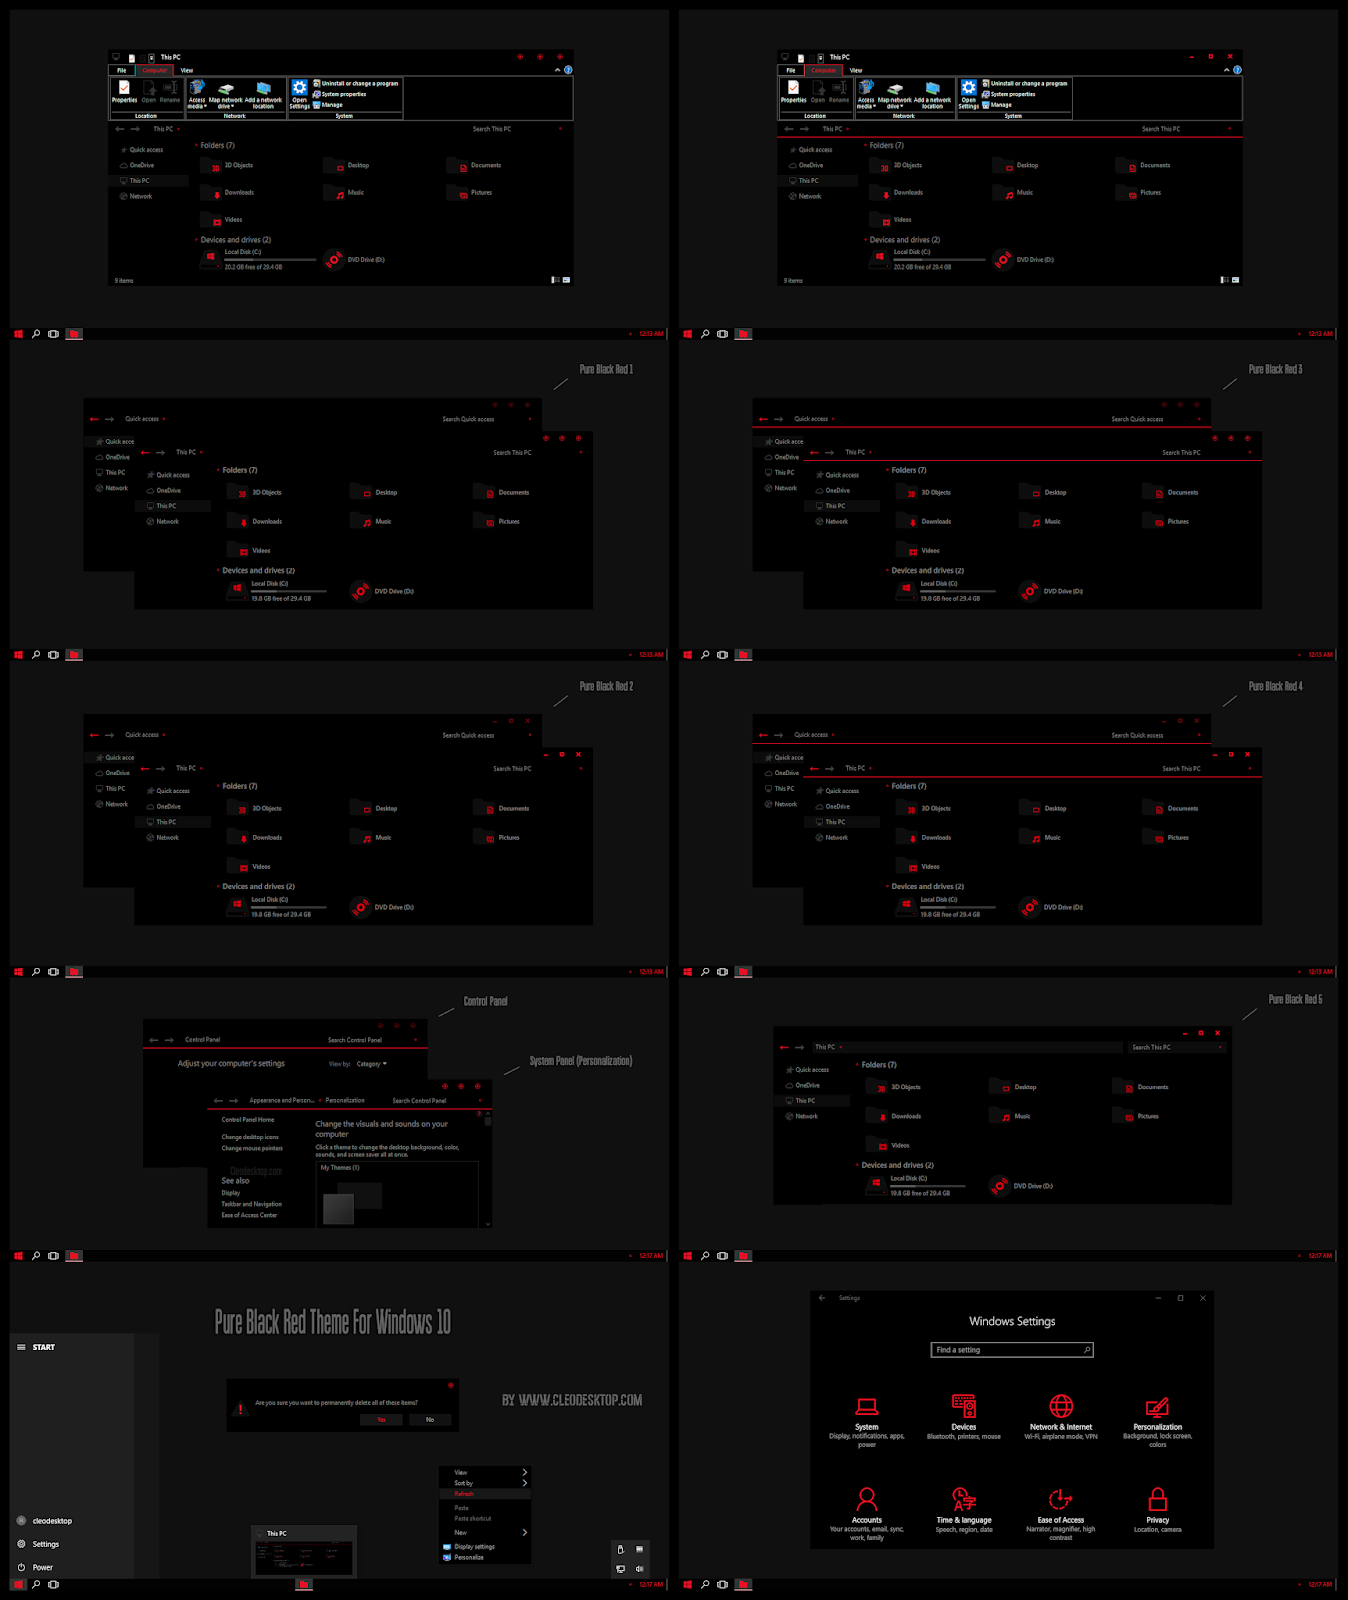 Pure Black Red Theme For Windows10 2004